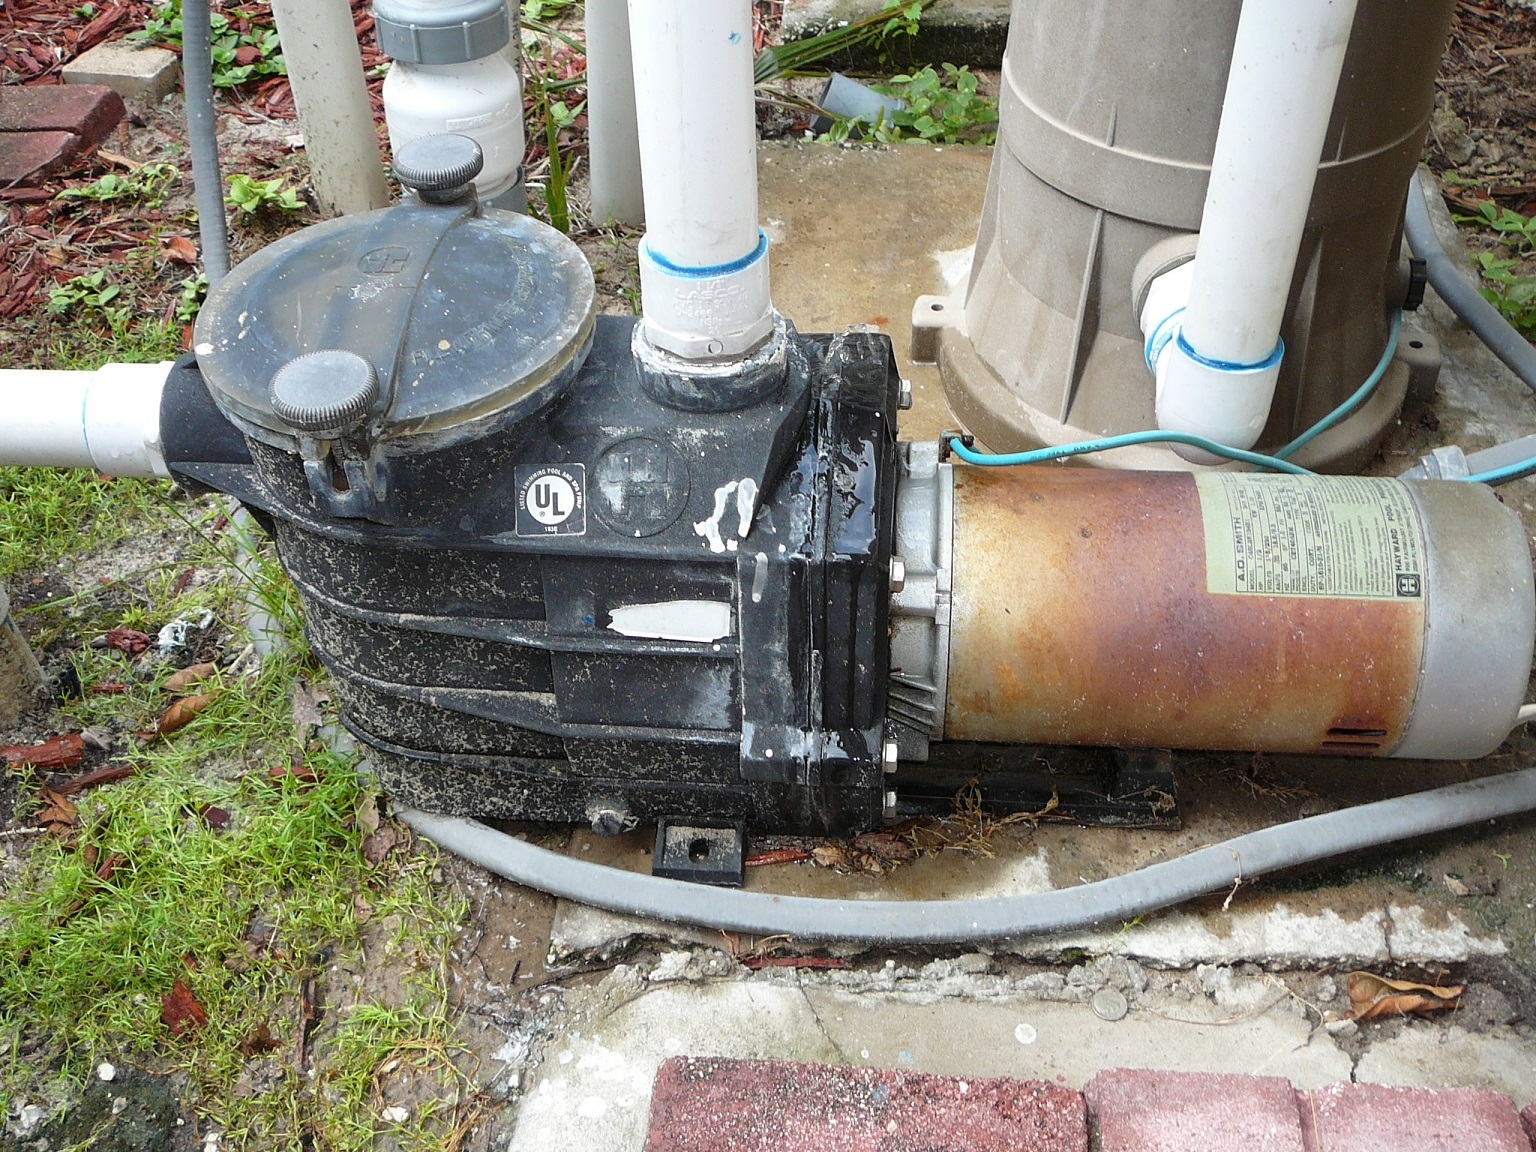 medium resolution of how to troubleshoot a pool pump motor motor overheated